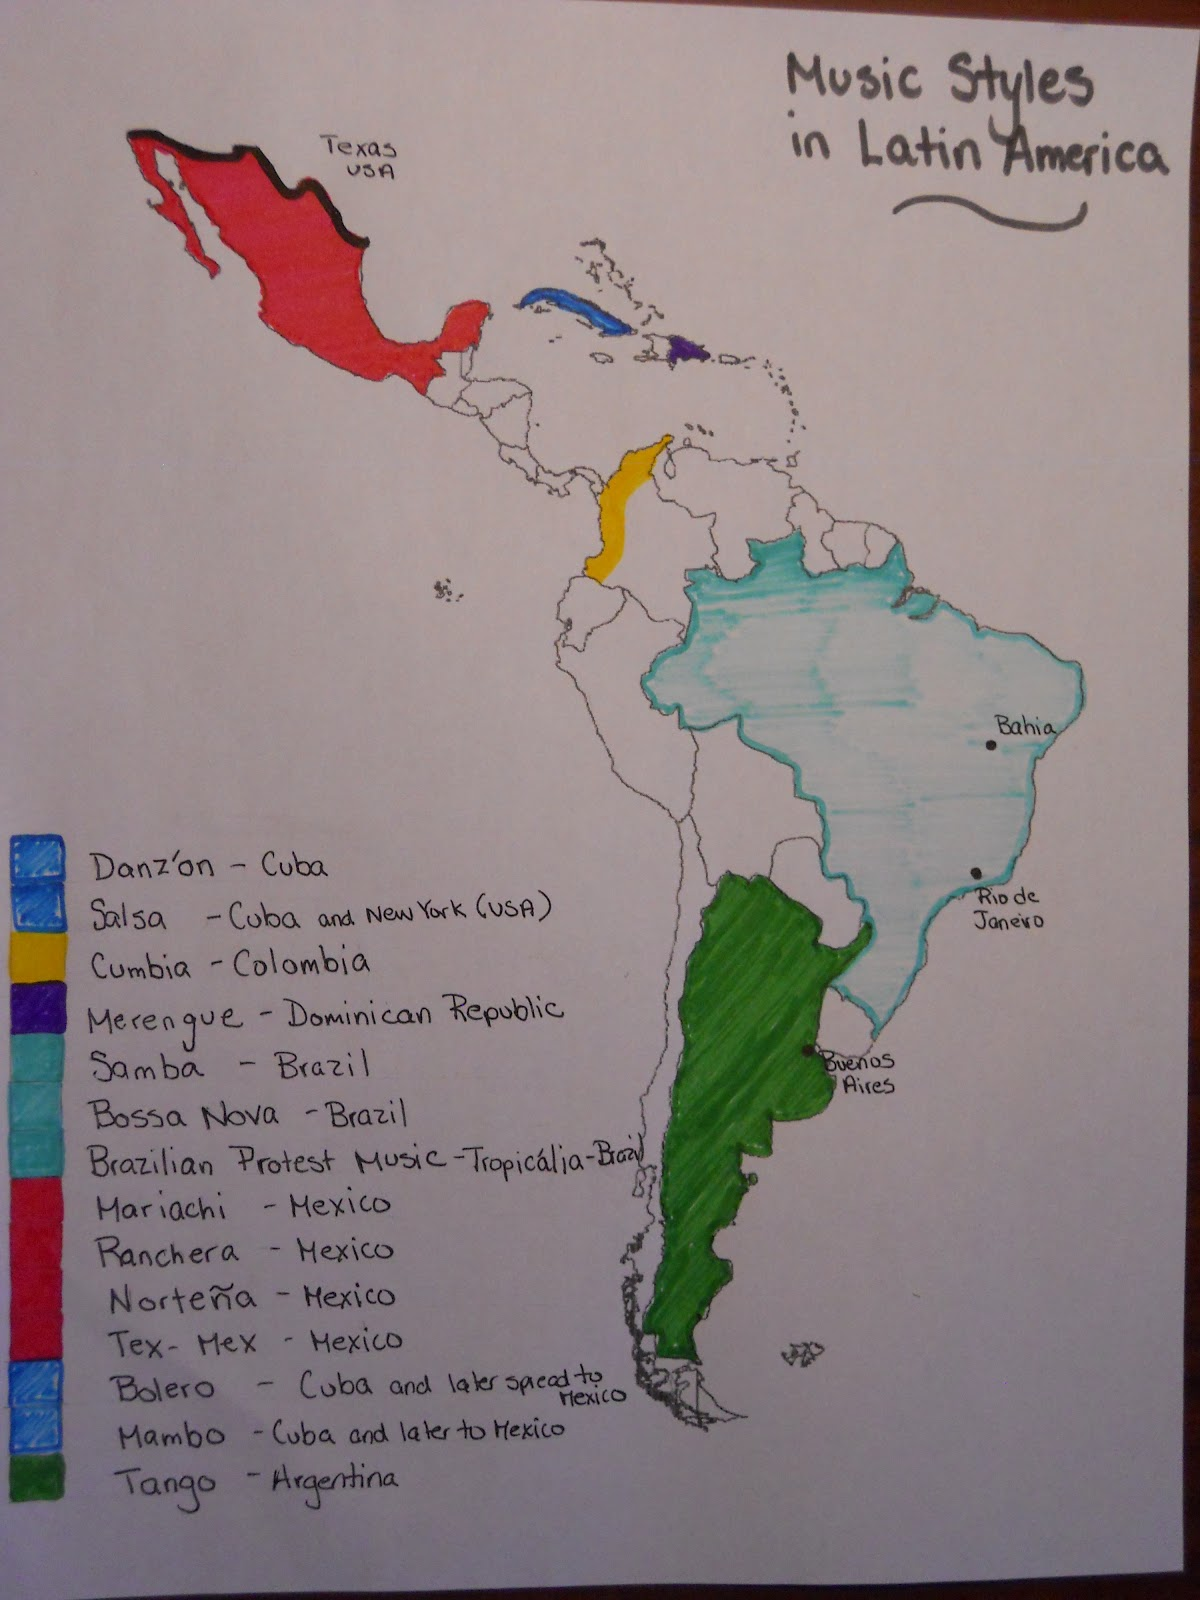 music styles in latin america map